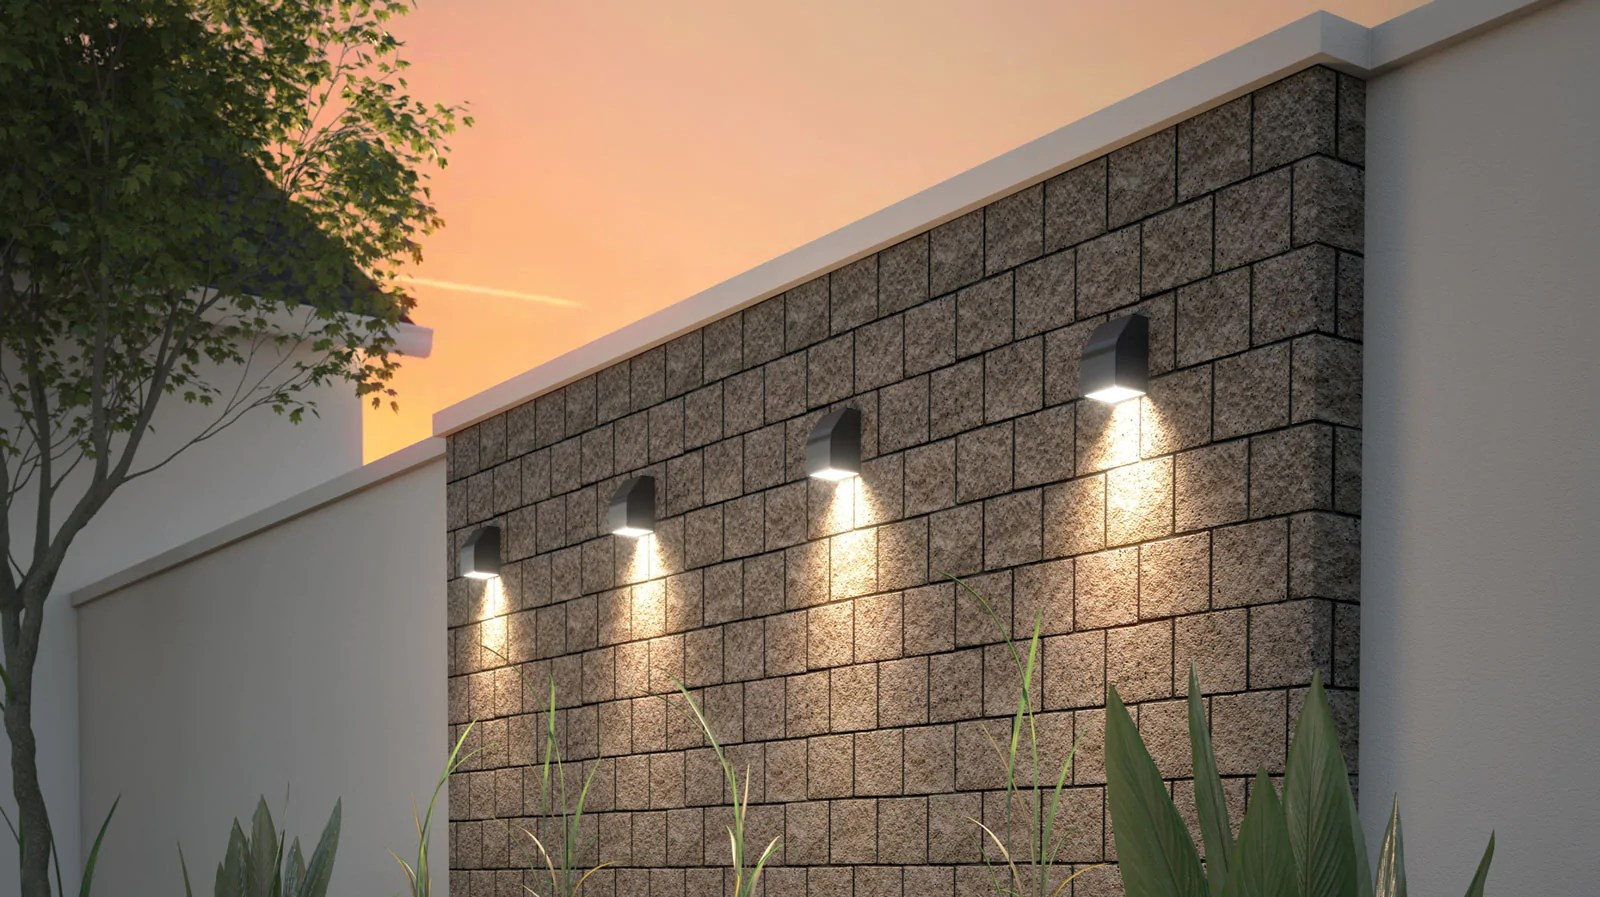 Wall Sconce Lighting Indoor Outdoor Wall Lights - Form + Function